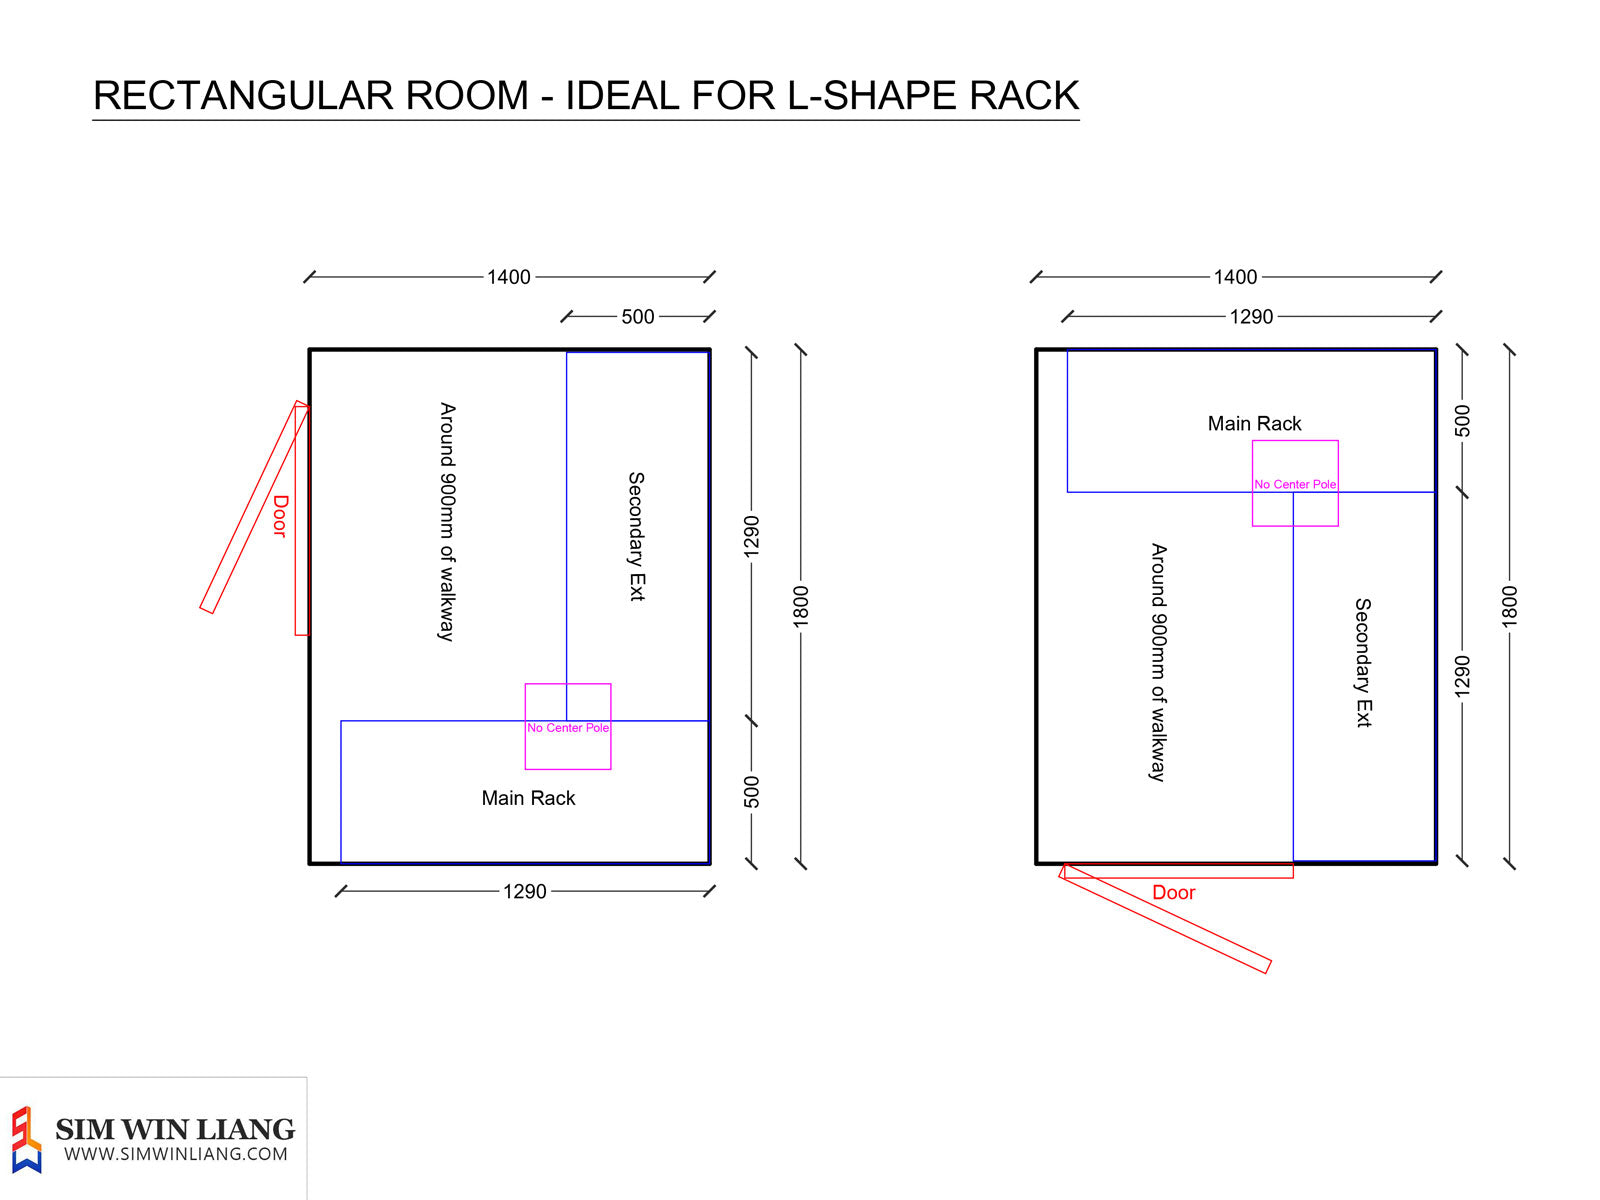 Recommended Rack Layout for Broad Rectangular Bomb Shelter or Storeroom by SIM WIN LIANG